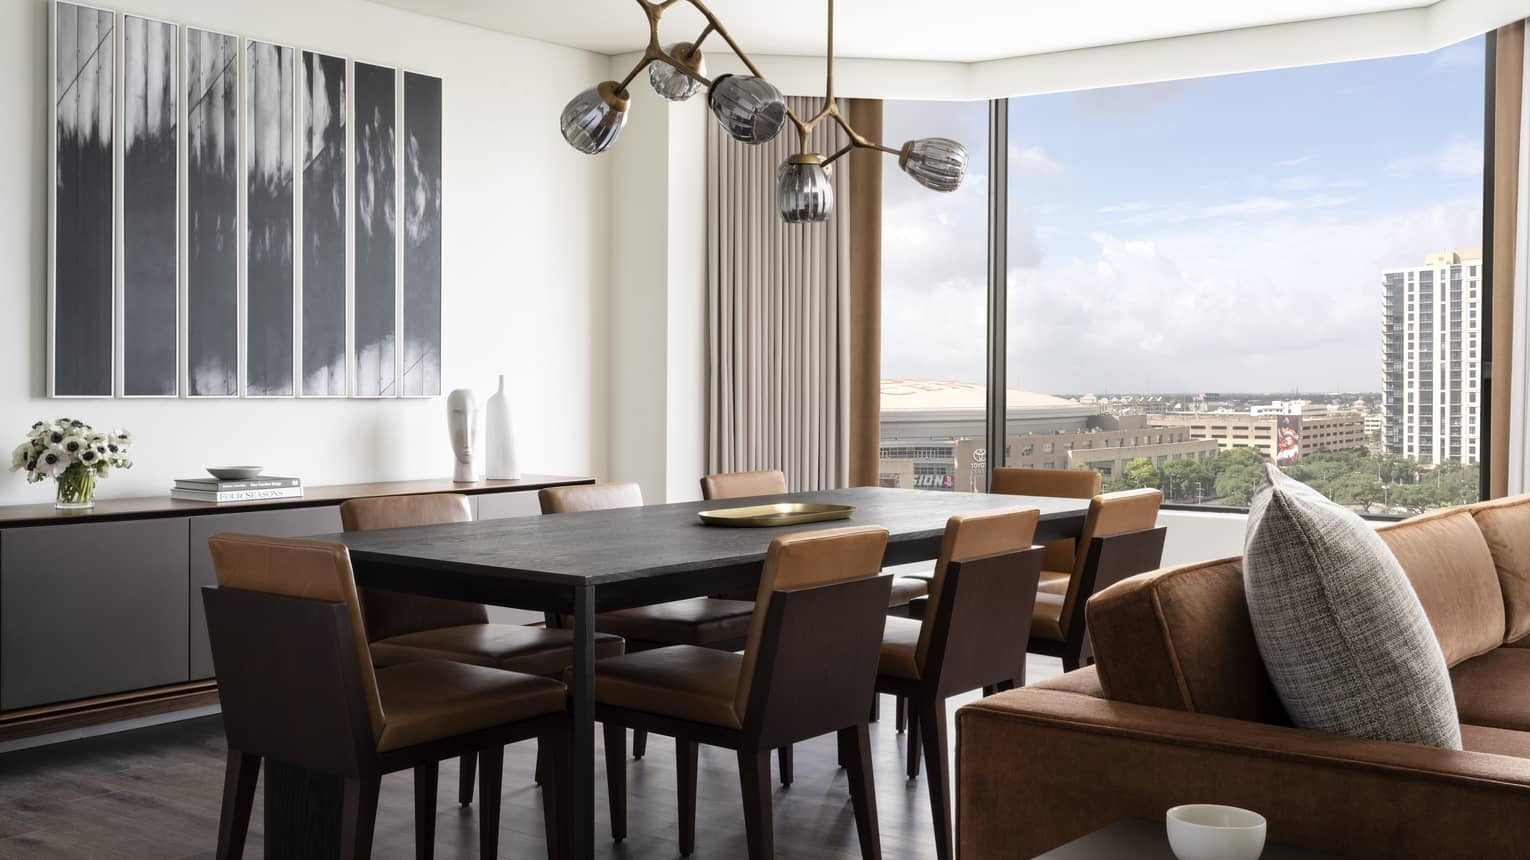 Dining room with table and eight chairs, modern hanging lamp, large window with city view